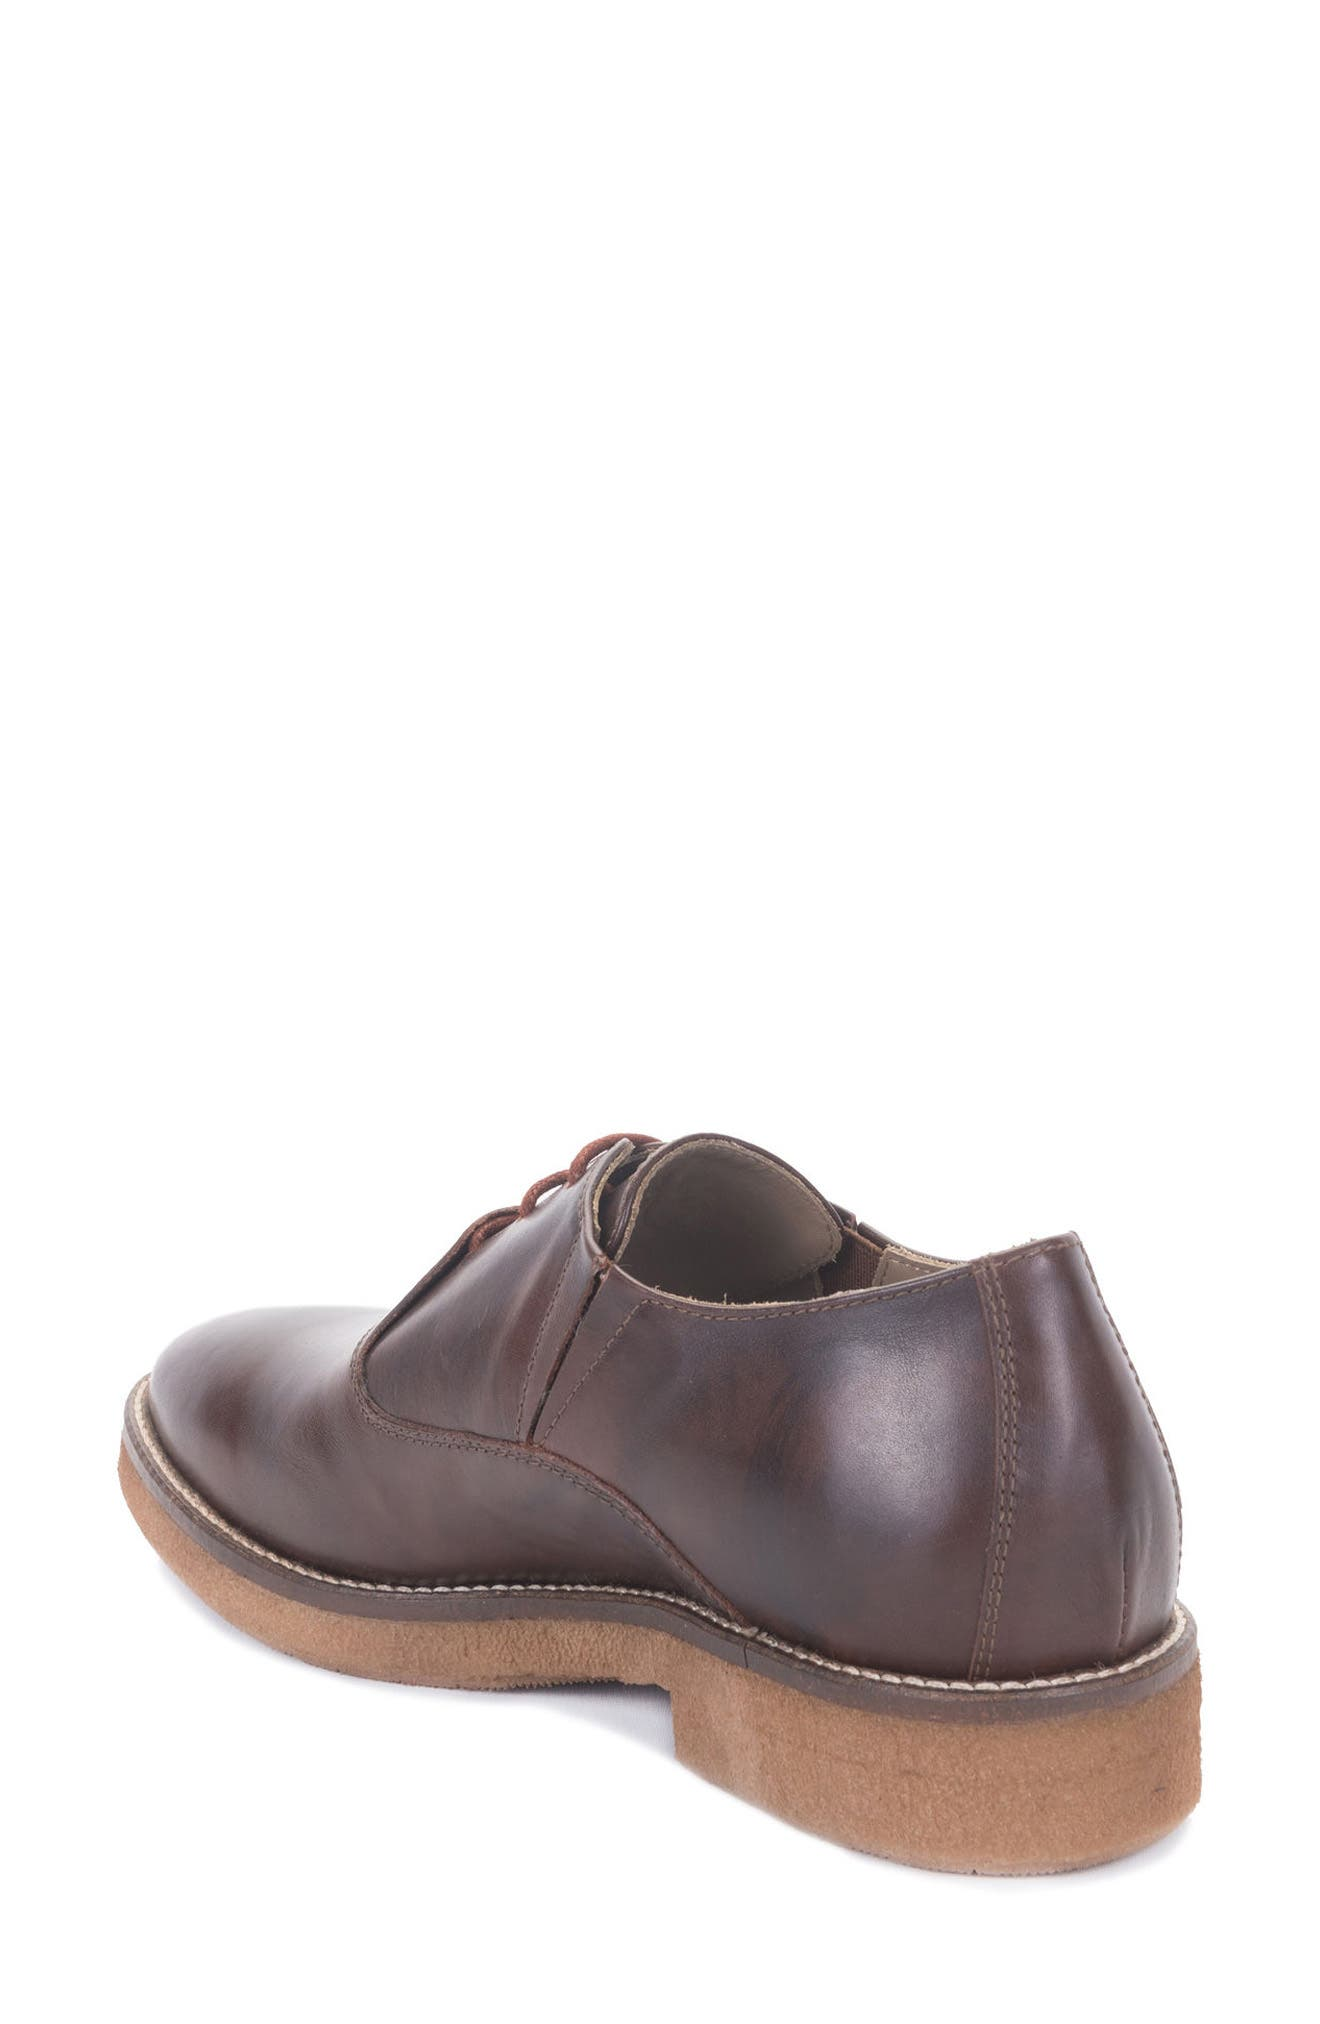 Molinella Water-Resistant Oxford,                             Alternate thumbnail 2, color,                             Ruggine Leather